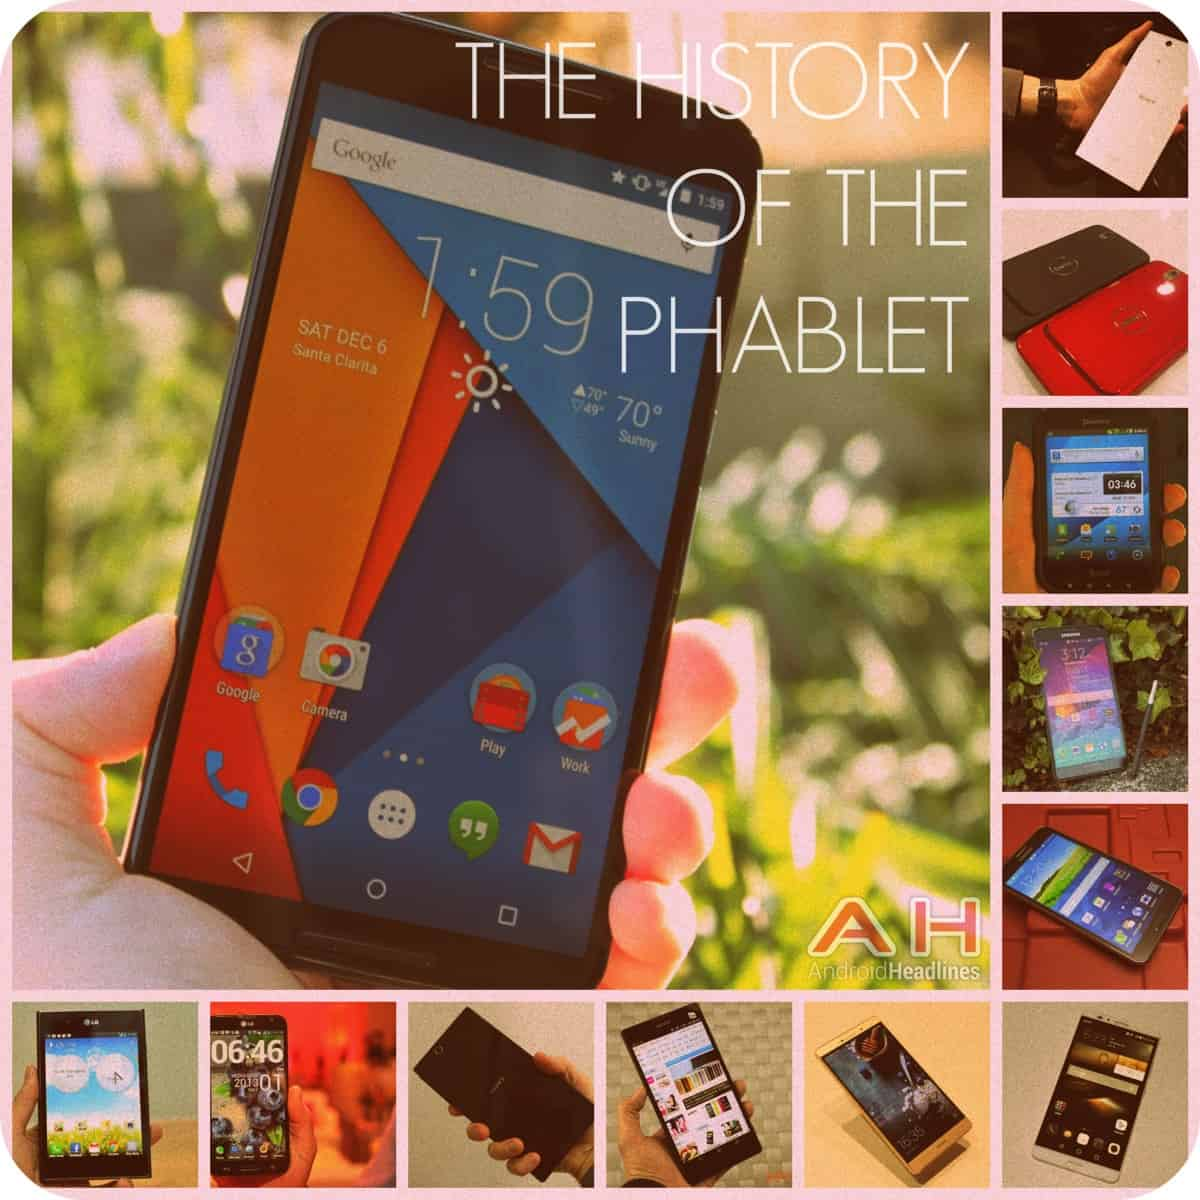 AH History of Phablets